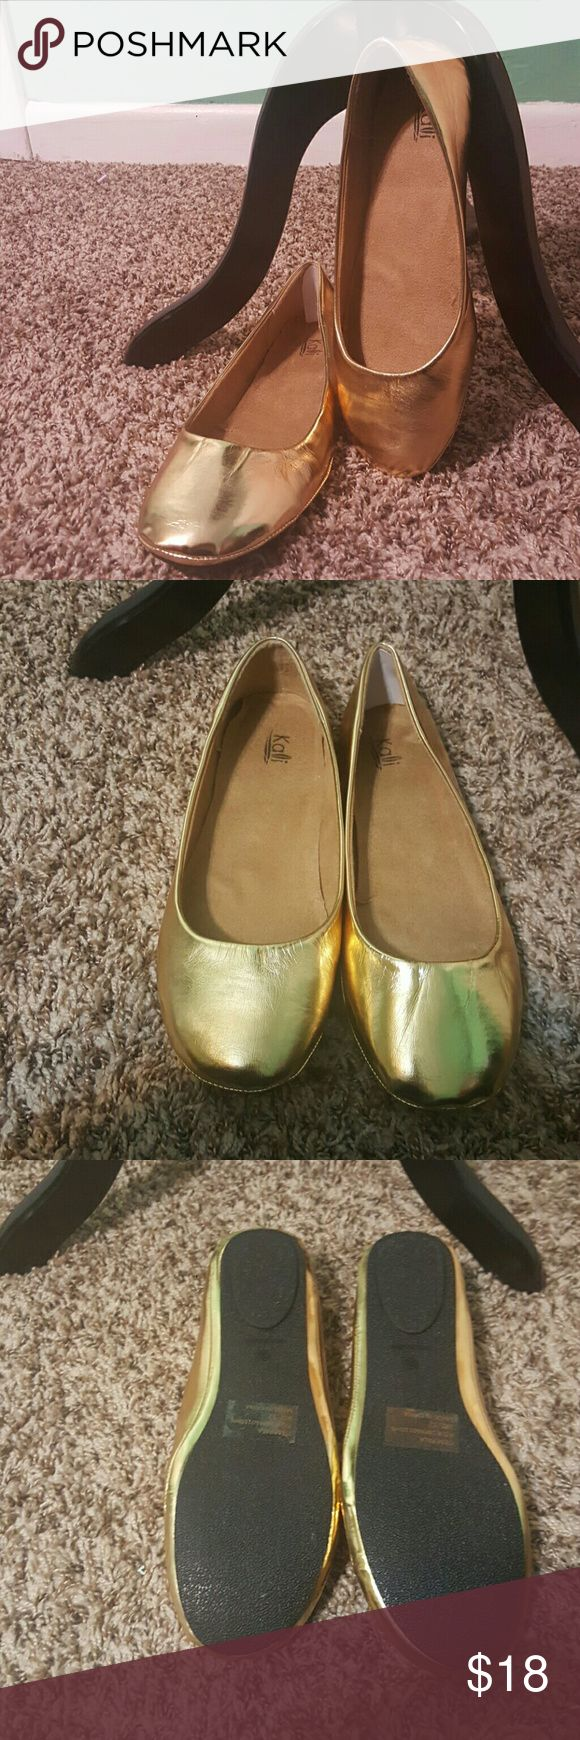 New Gold Metallic Ballet Flats Plus Size 11, 11.5 These are a Sz 12 but run small. Would fit a size 11 or 11.5 best. True metallic color. The Sz 10 would be best for a 9.5 or 9. Kali Shoes Flats & Loafers